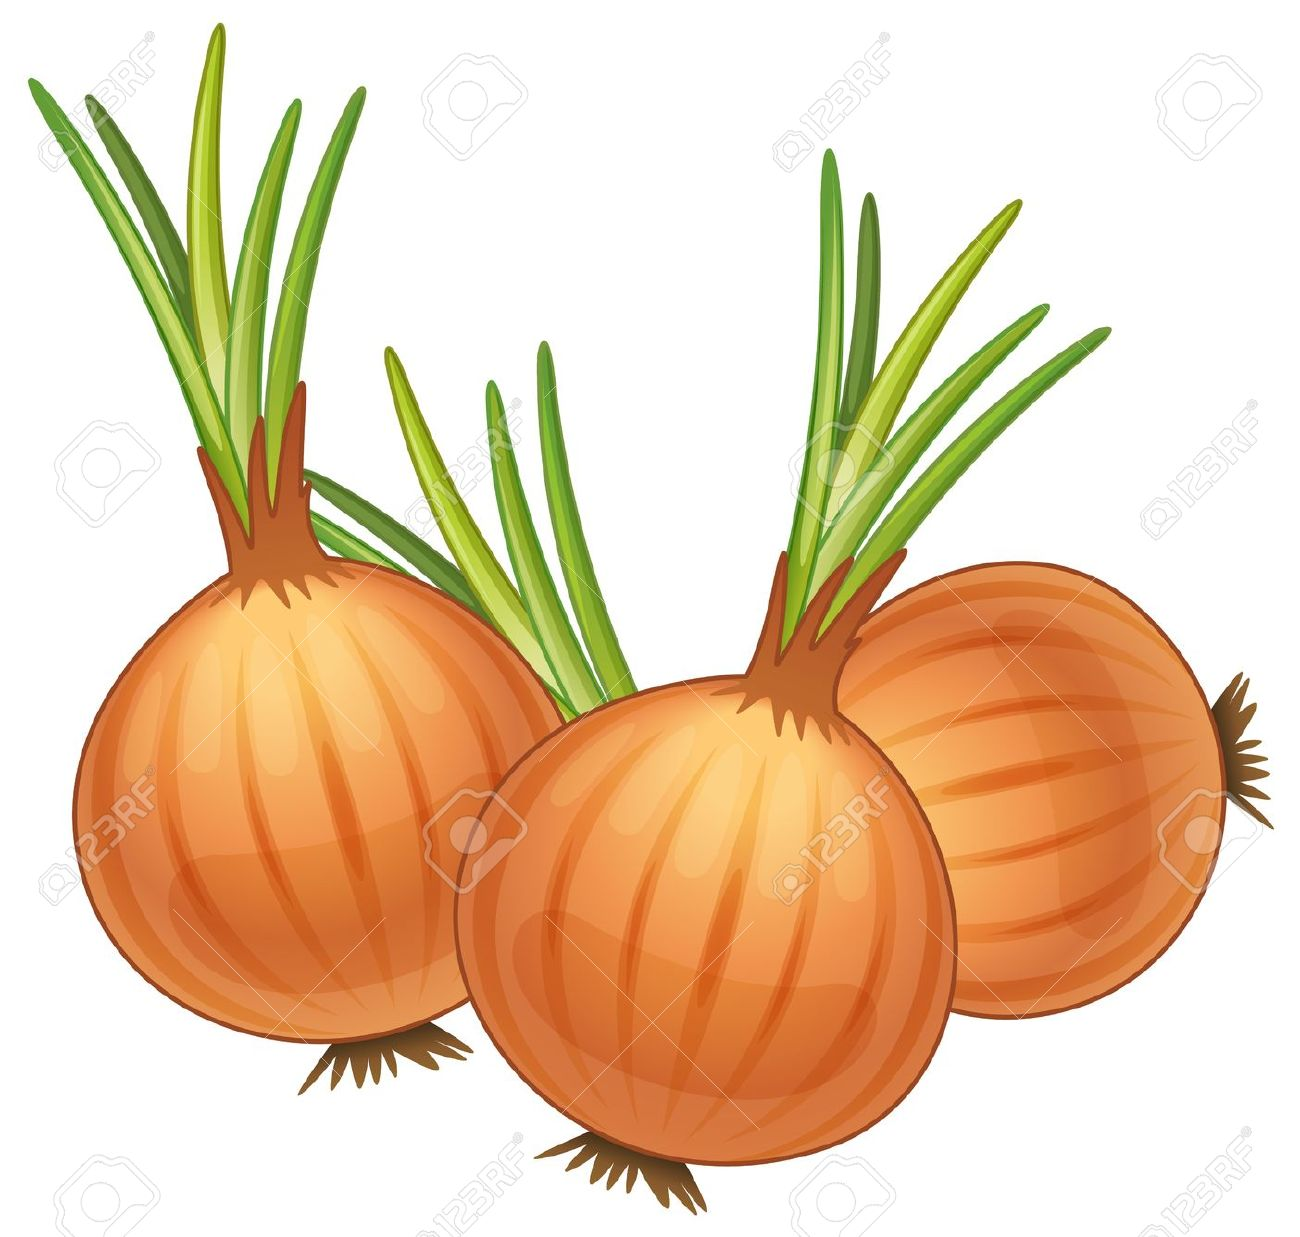 Animated pencil and in. Onion clipart